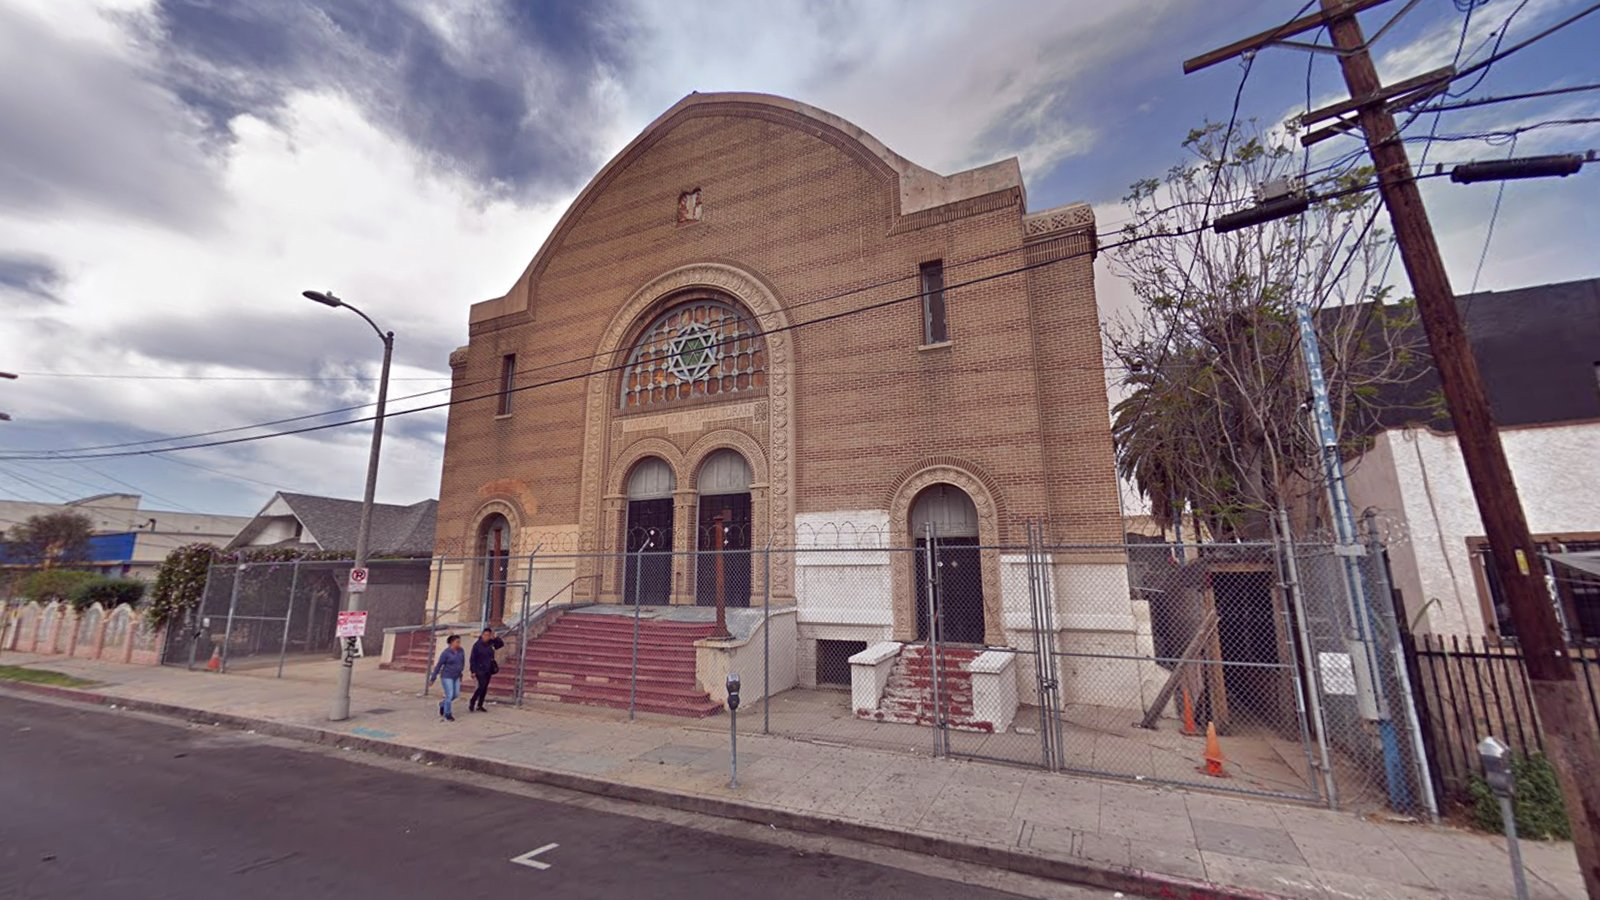 The century-old Breed Street Shul in the Boyle Heights neighborhood of Los Angeles. Image courtesy of Google Maps